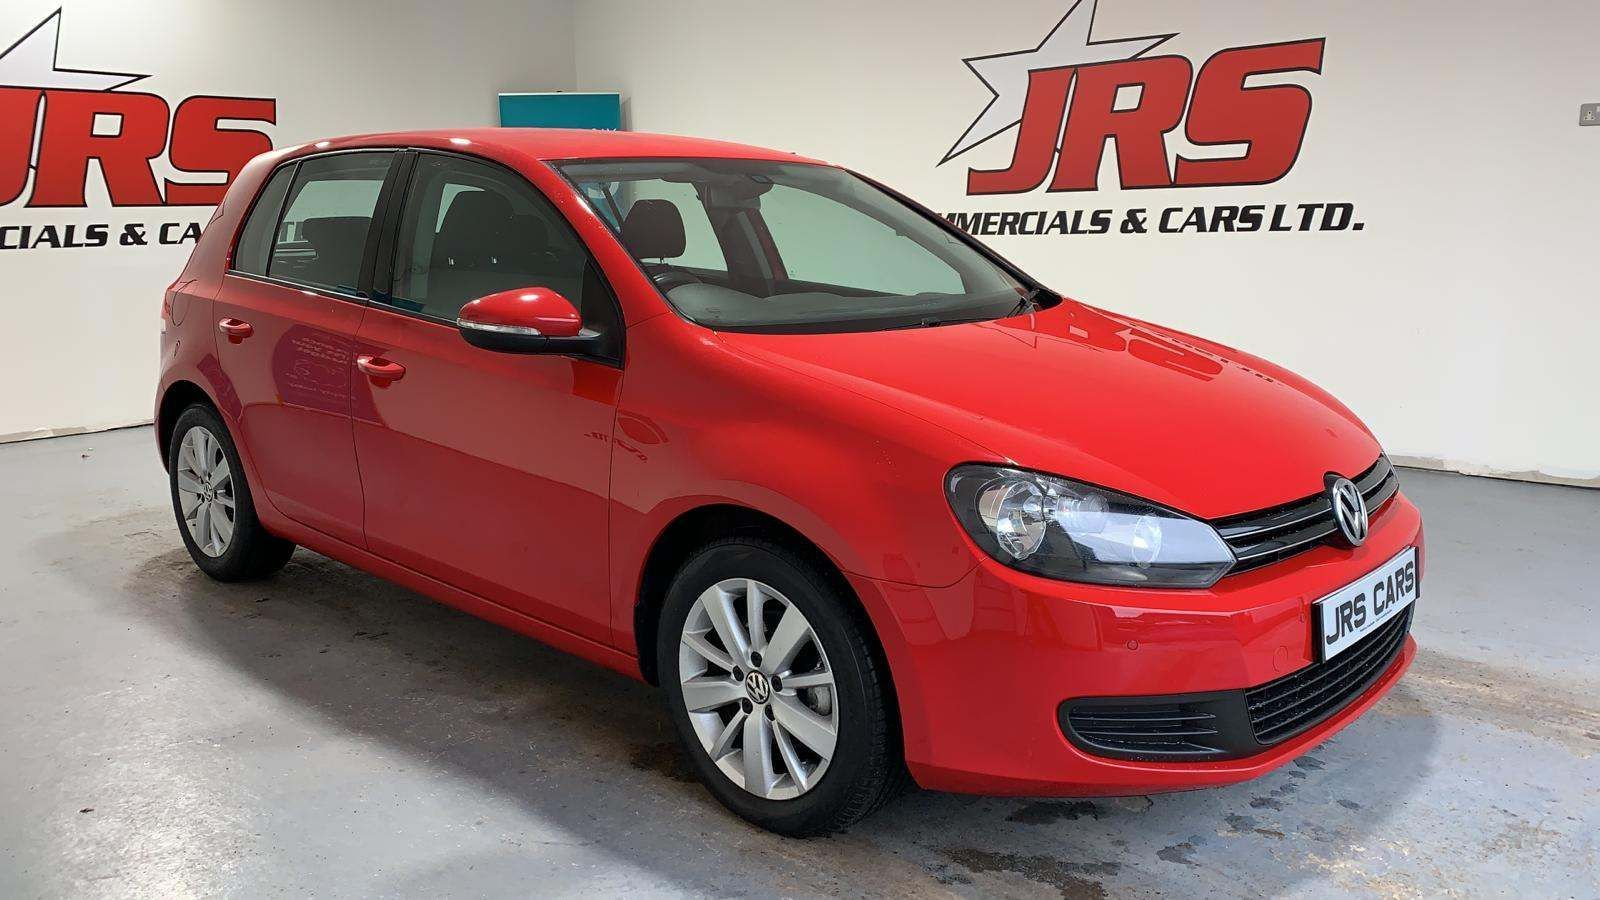 2011 VOLKSWAGEN Golf 1.6 TDI BlueMotion Tech Match Final Edition Diesel Manual **£20 Road Tax** – J R S Commercials And Cars Dungannon